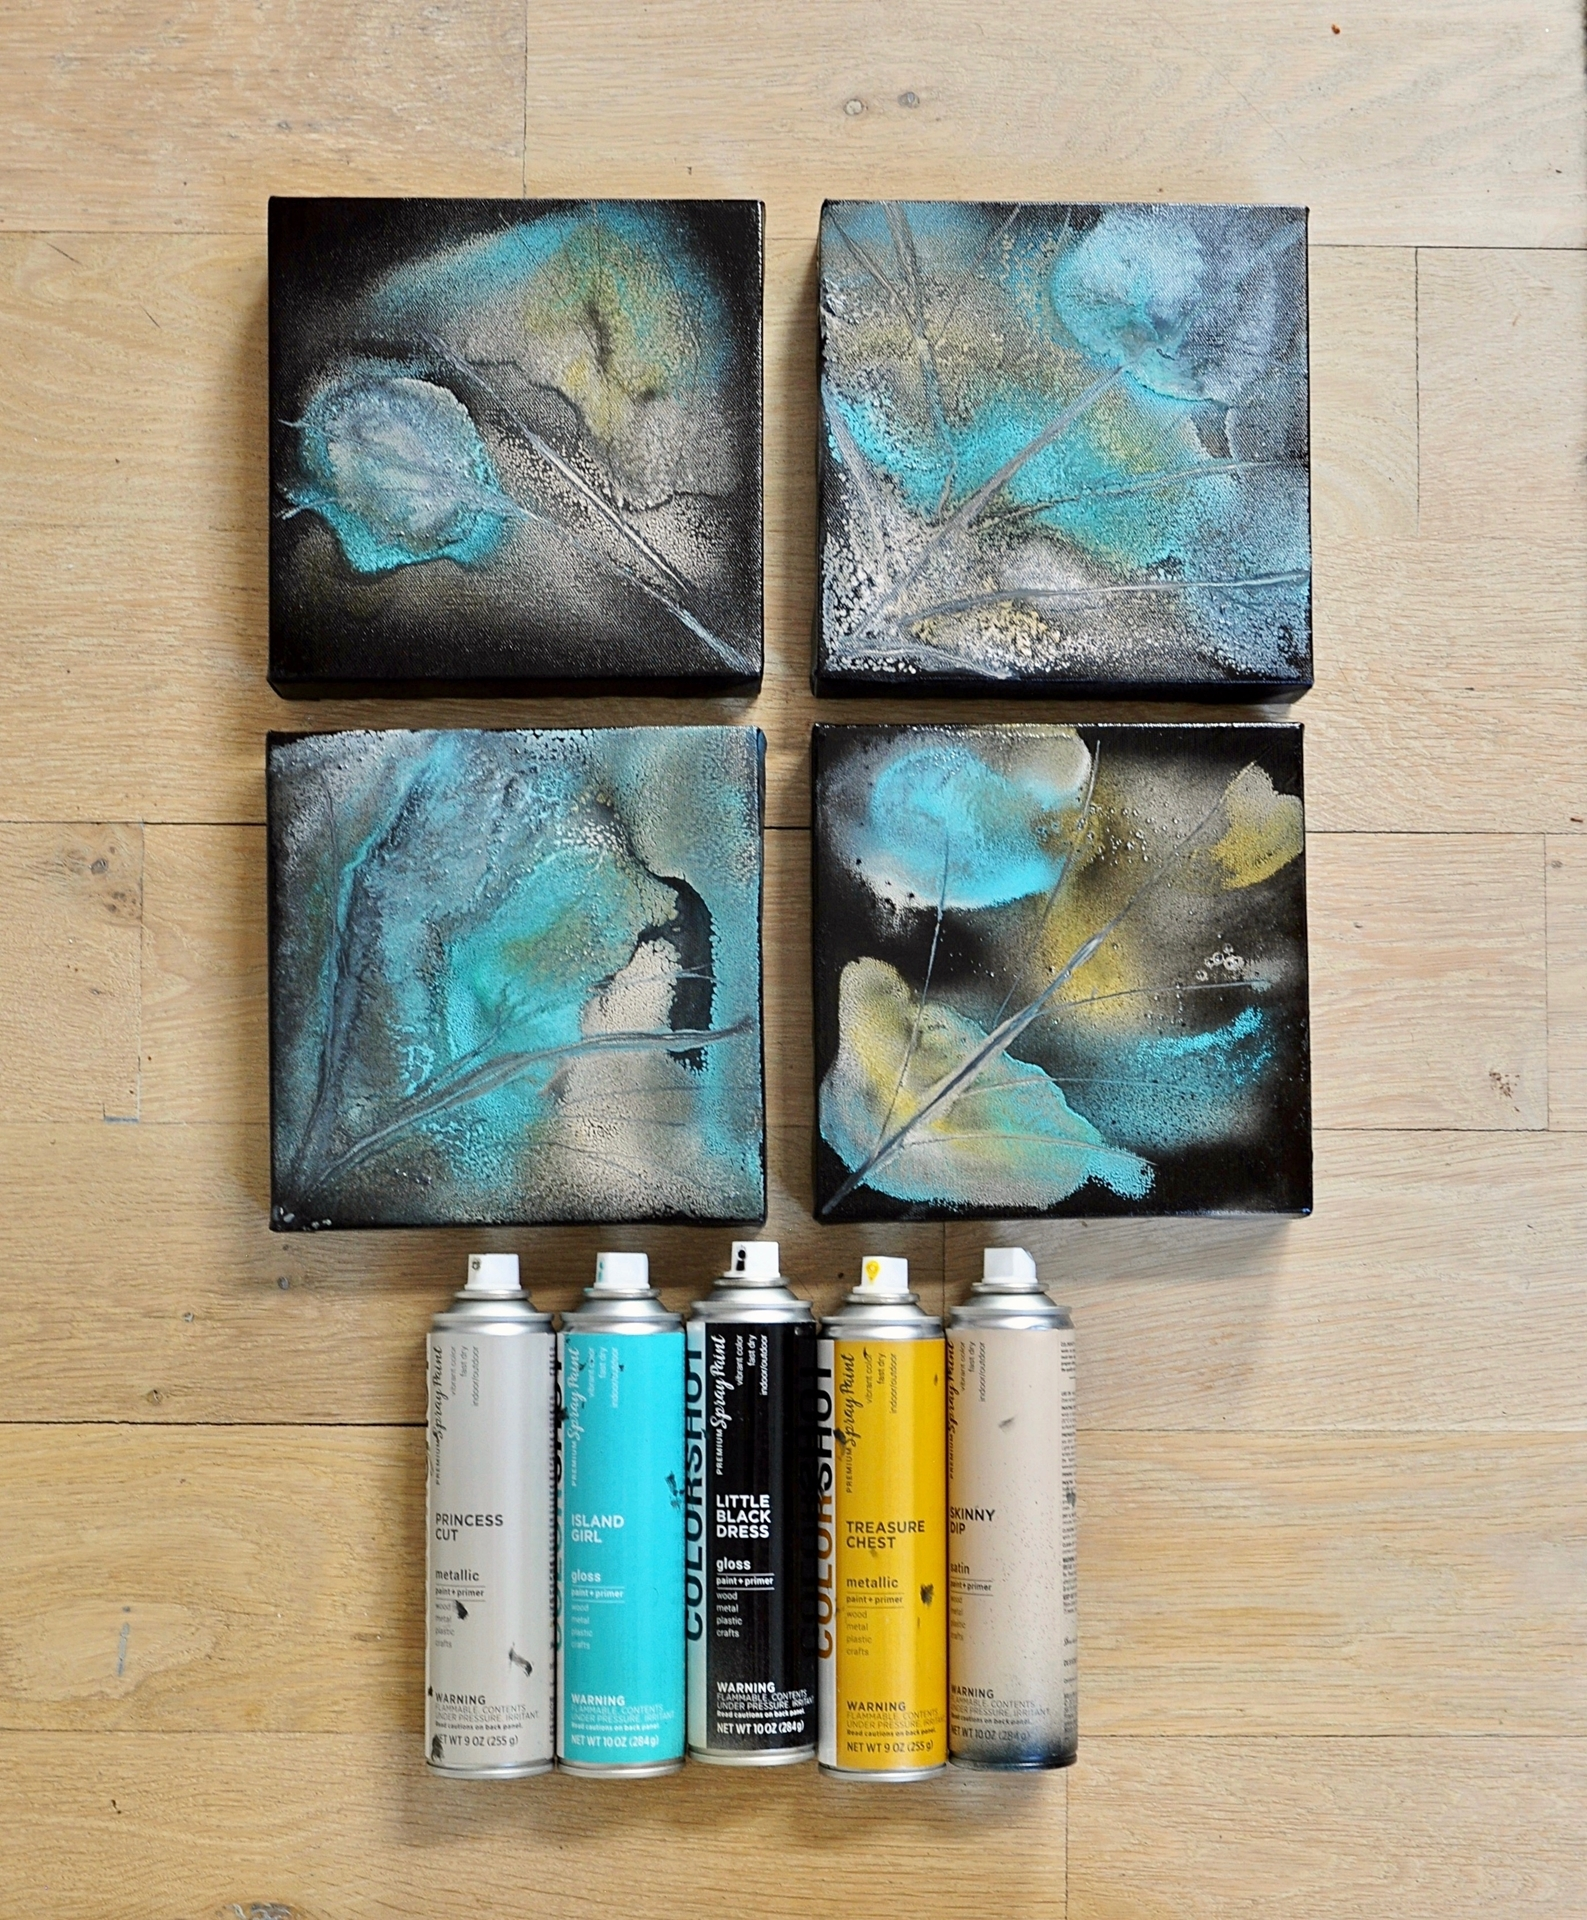 COLORSHOT Marbling Spray Paint Art Technique